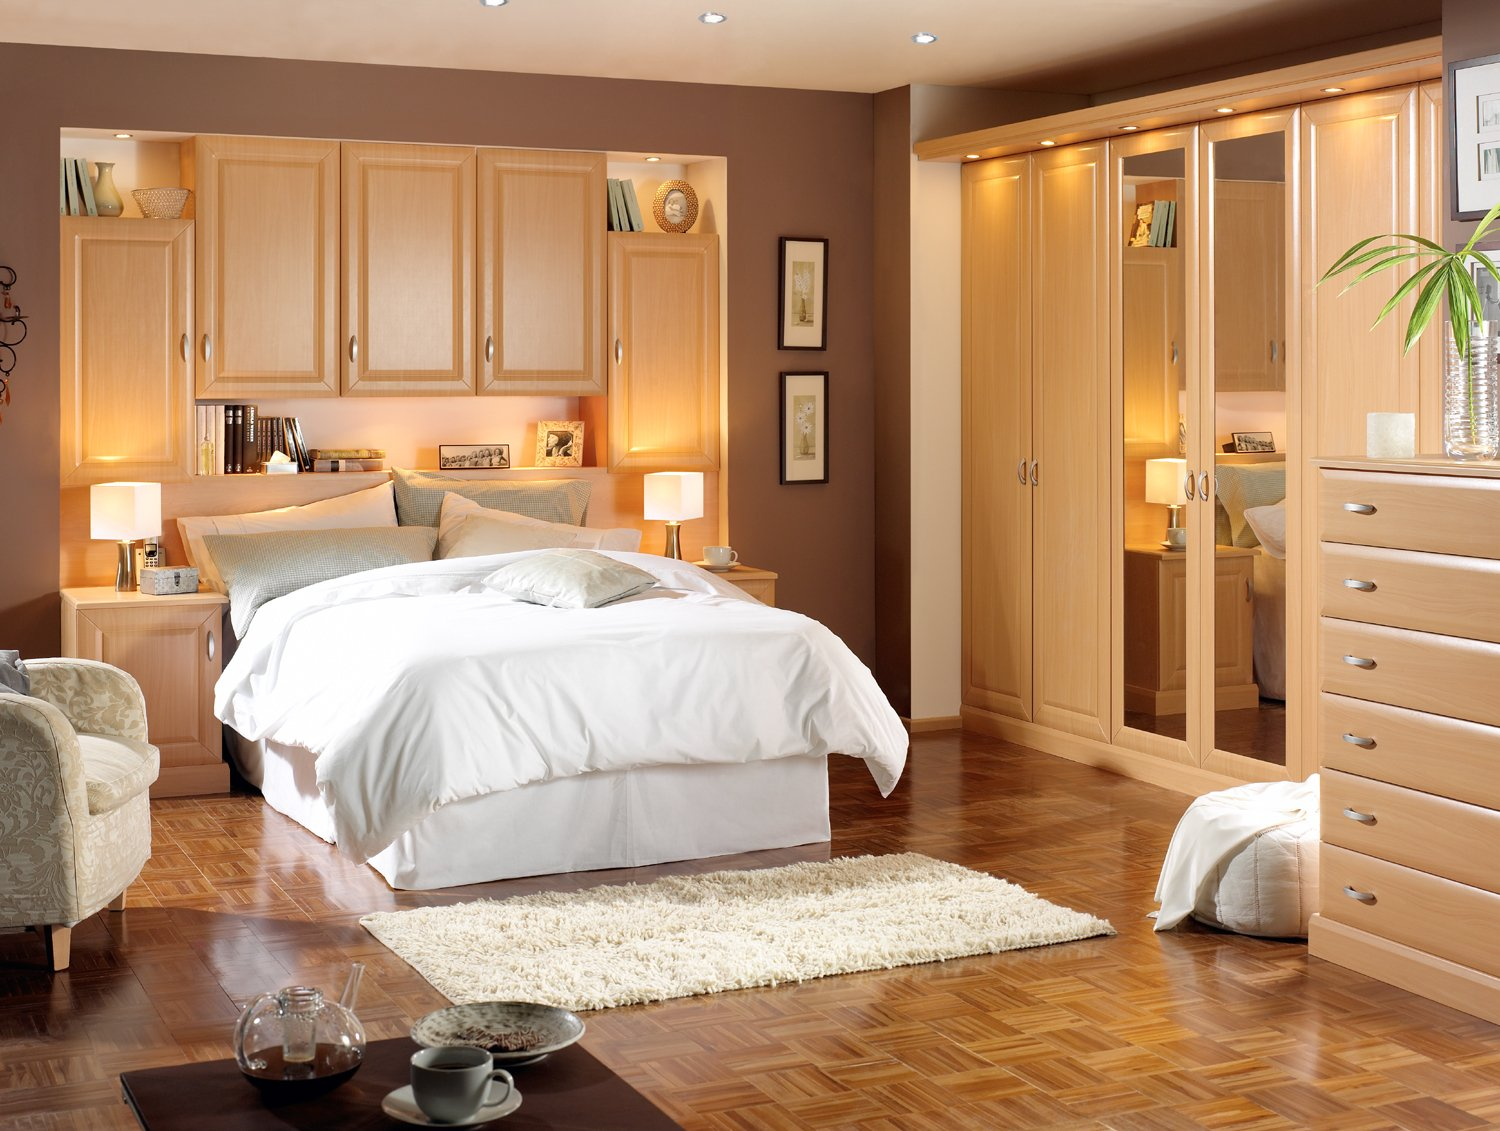 Bedrooms cupboard designs pictures an interior design for Bedroom interior design pictures